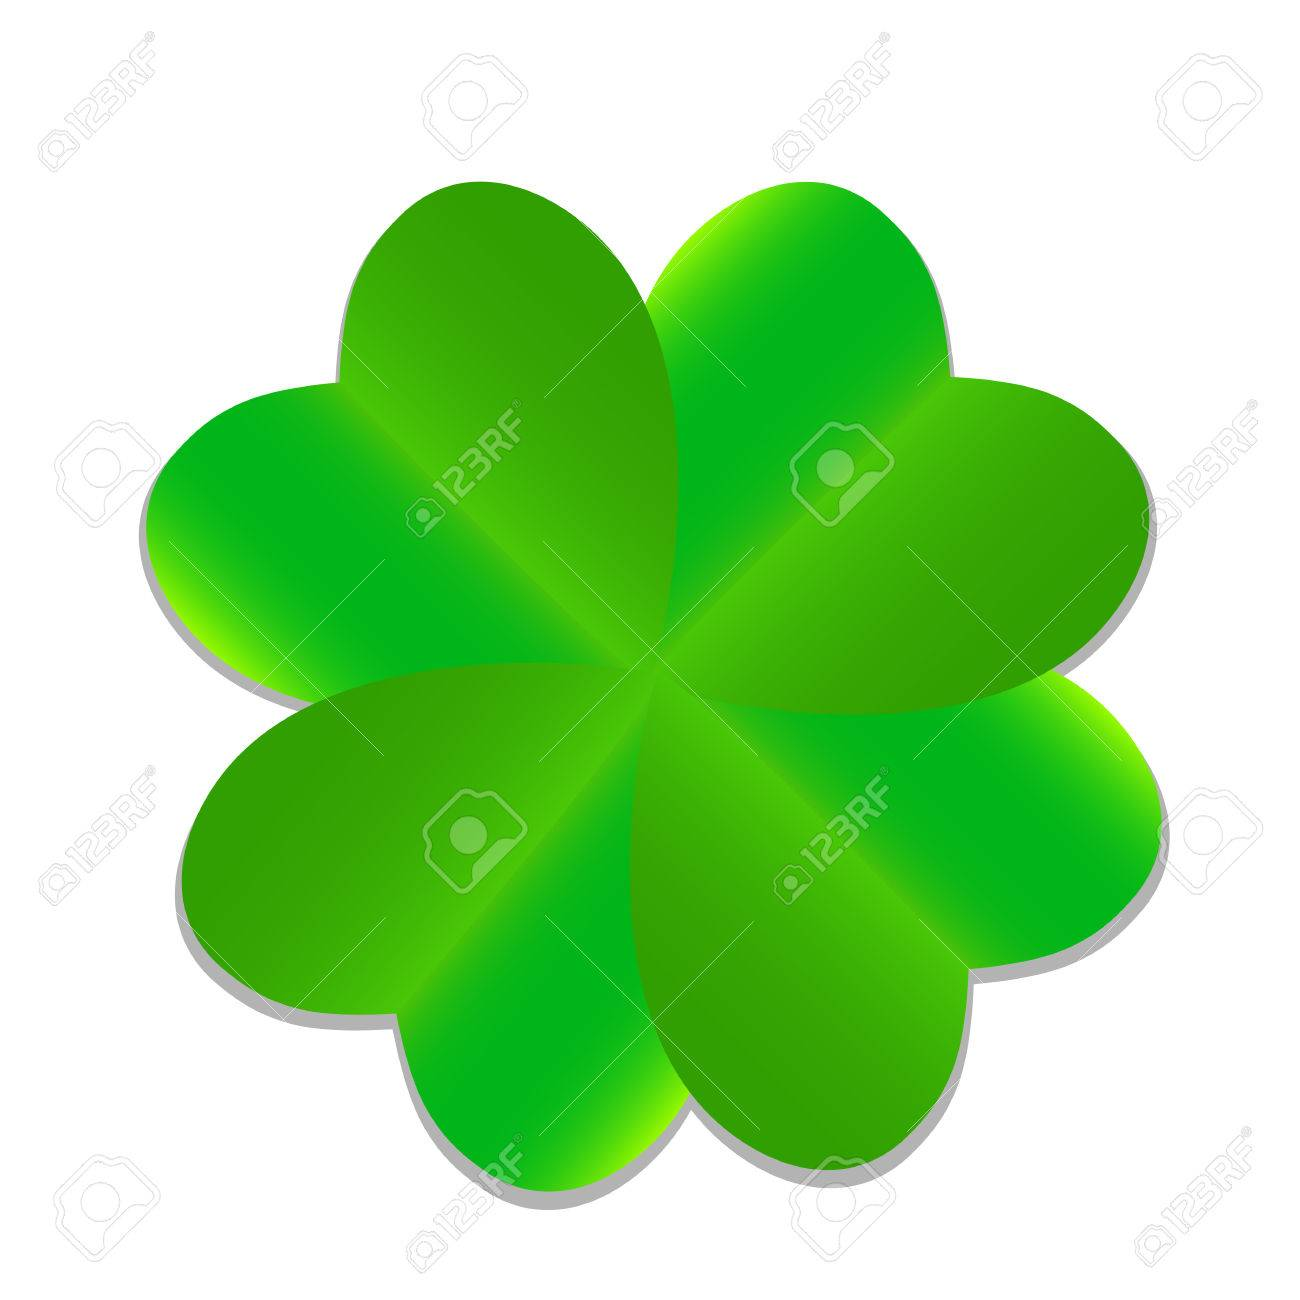 four leaf green clover vector illustration royalty free cliparts rh 123rf com 4 leaf clover vector four leaf clover vector outline